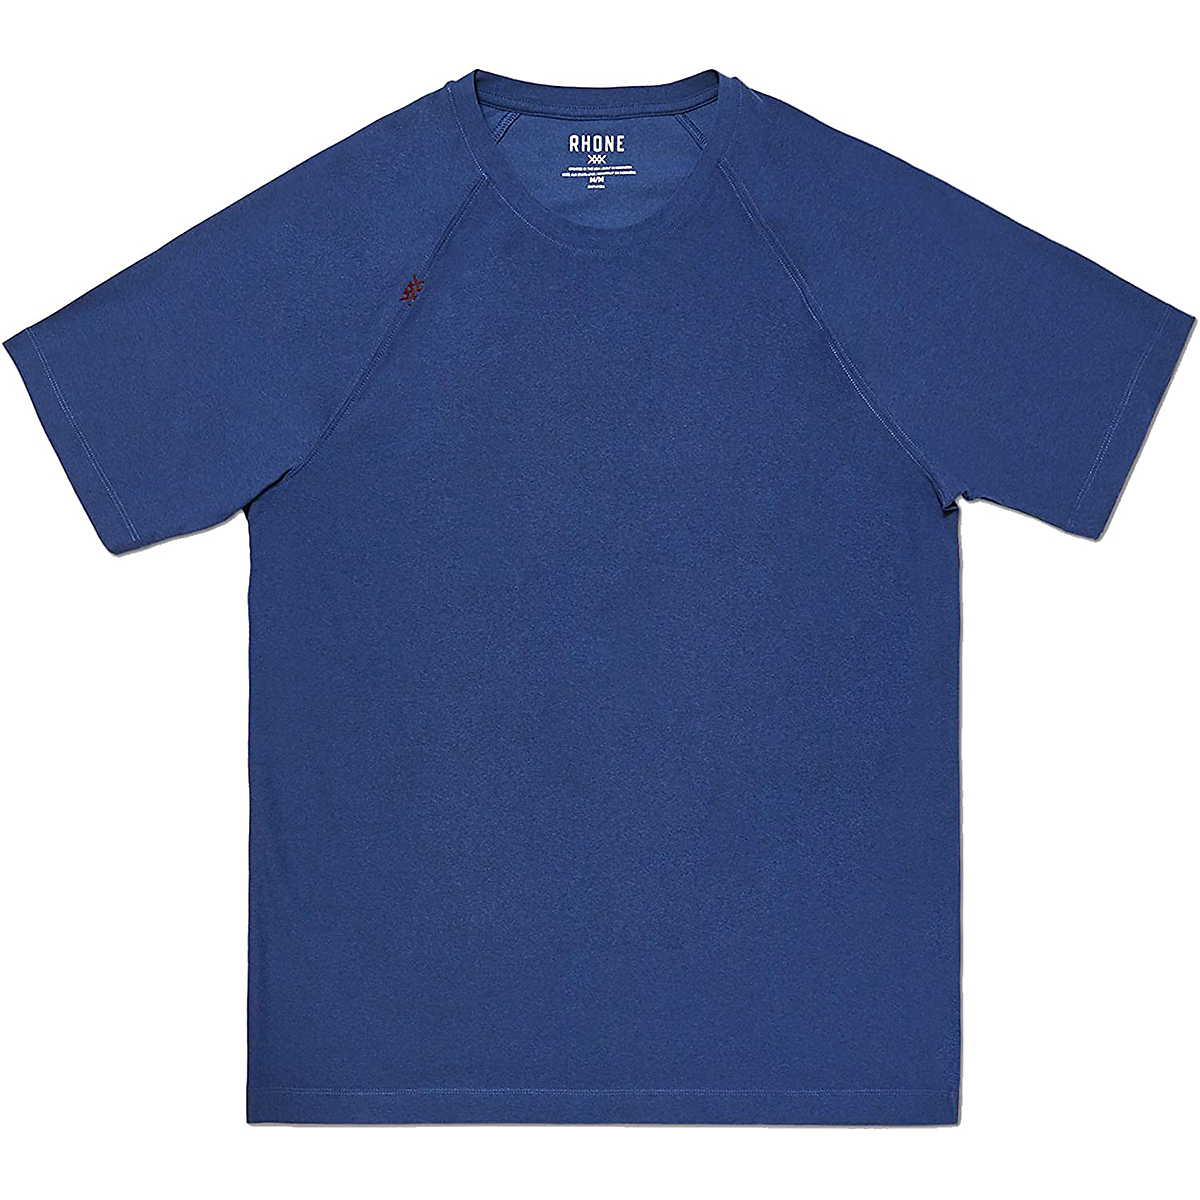 Men's Rhone Reign Short Sleeve  - Color: Midnight Sapphire Heather - Size: S, Midnight Sapphire Heather, large, image 1